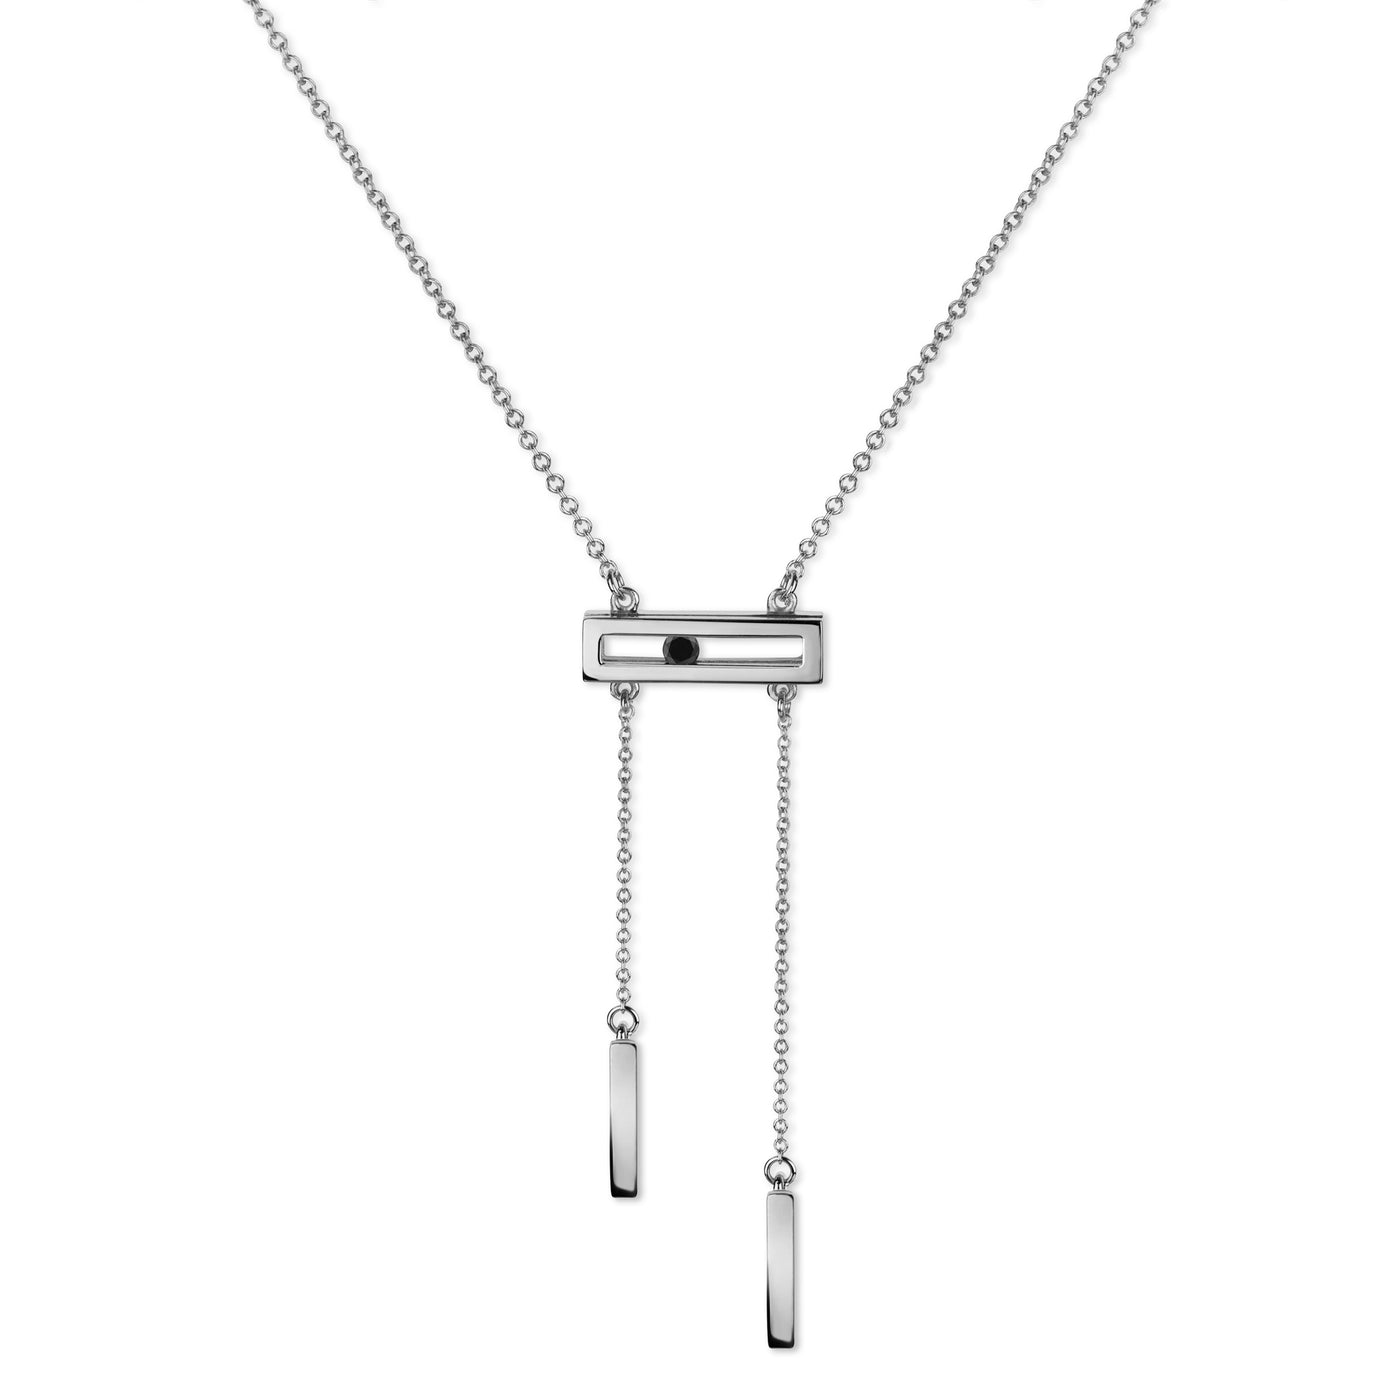 Luke Rose Jewellery white gold black diamond drop necklace